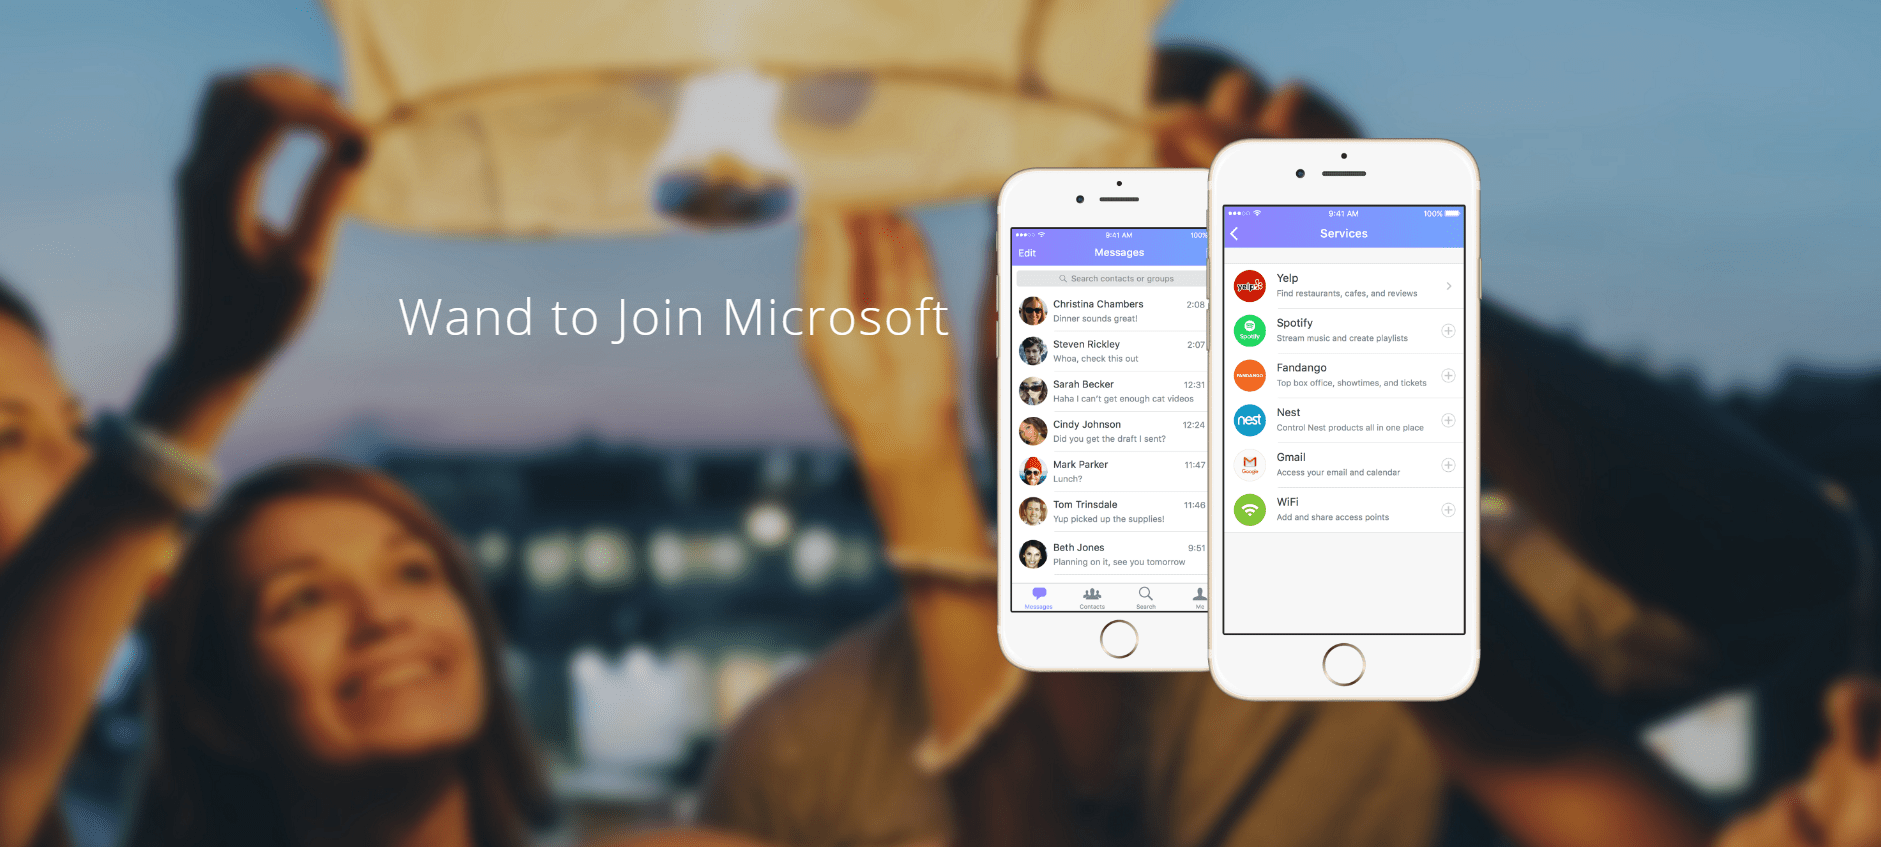 Microsoft's new acquisition can enhance Cortana's chat bots